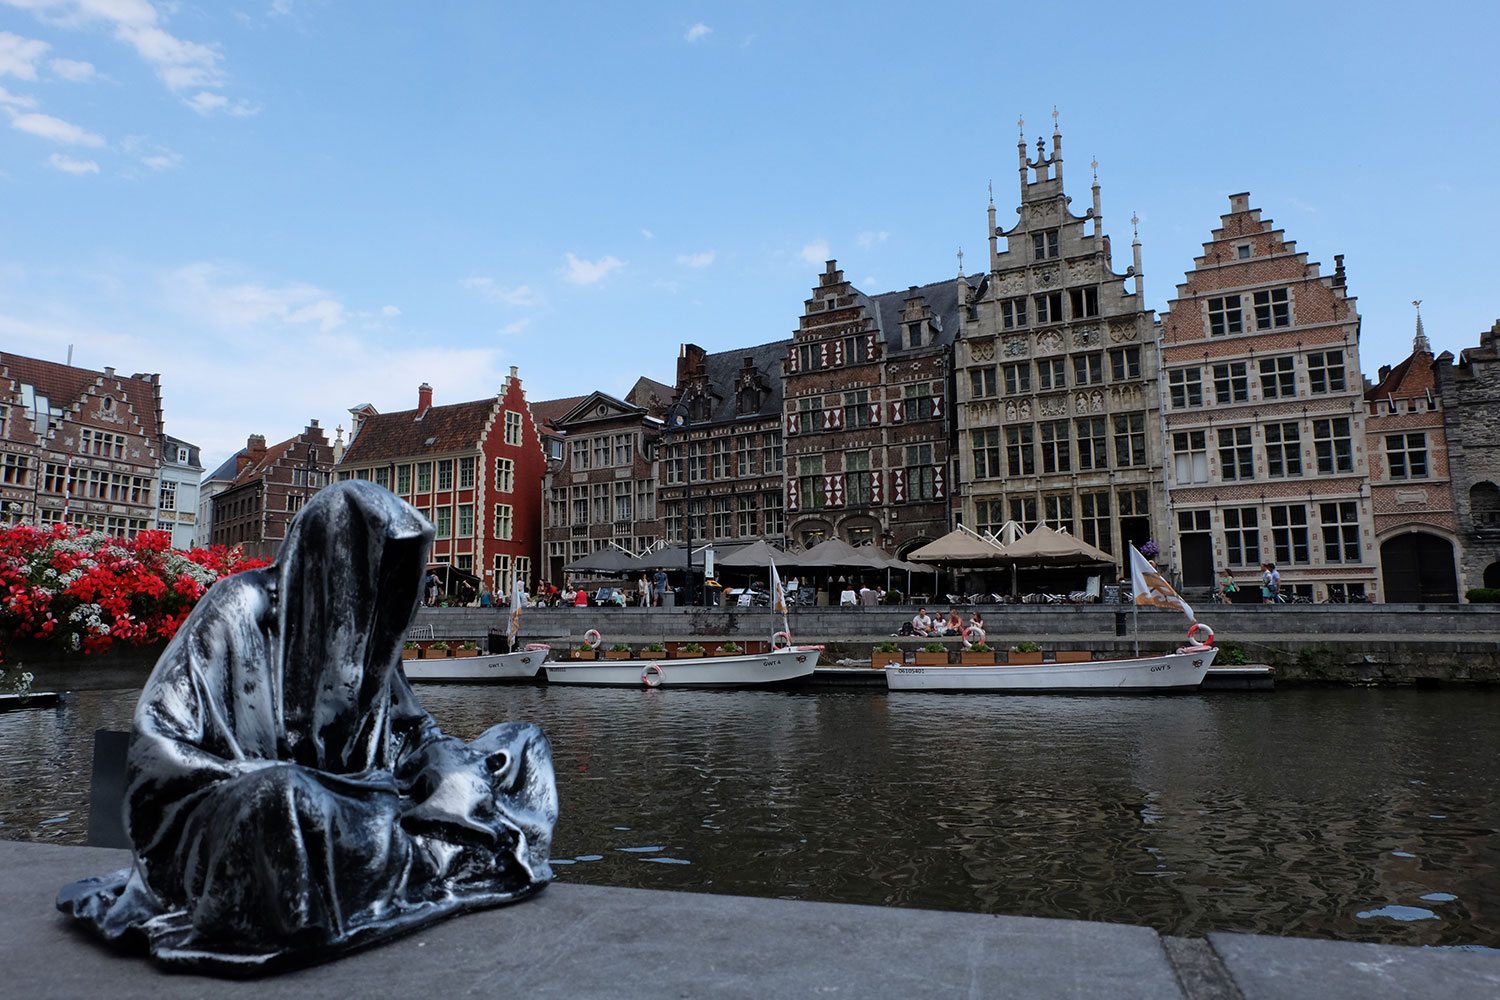 guardians-of-time-manfred-kili-kielnhofer-gent-belgium-contemporary-art-arts-design-sculpture-5273